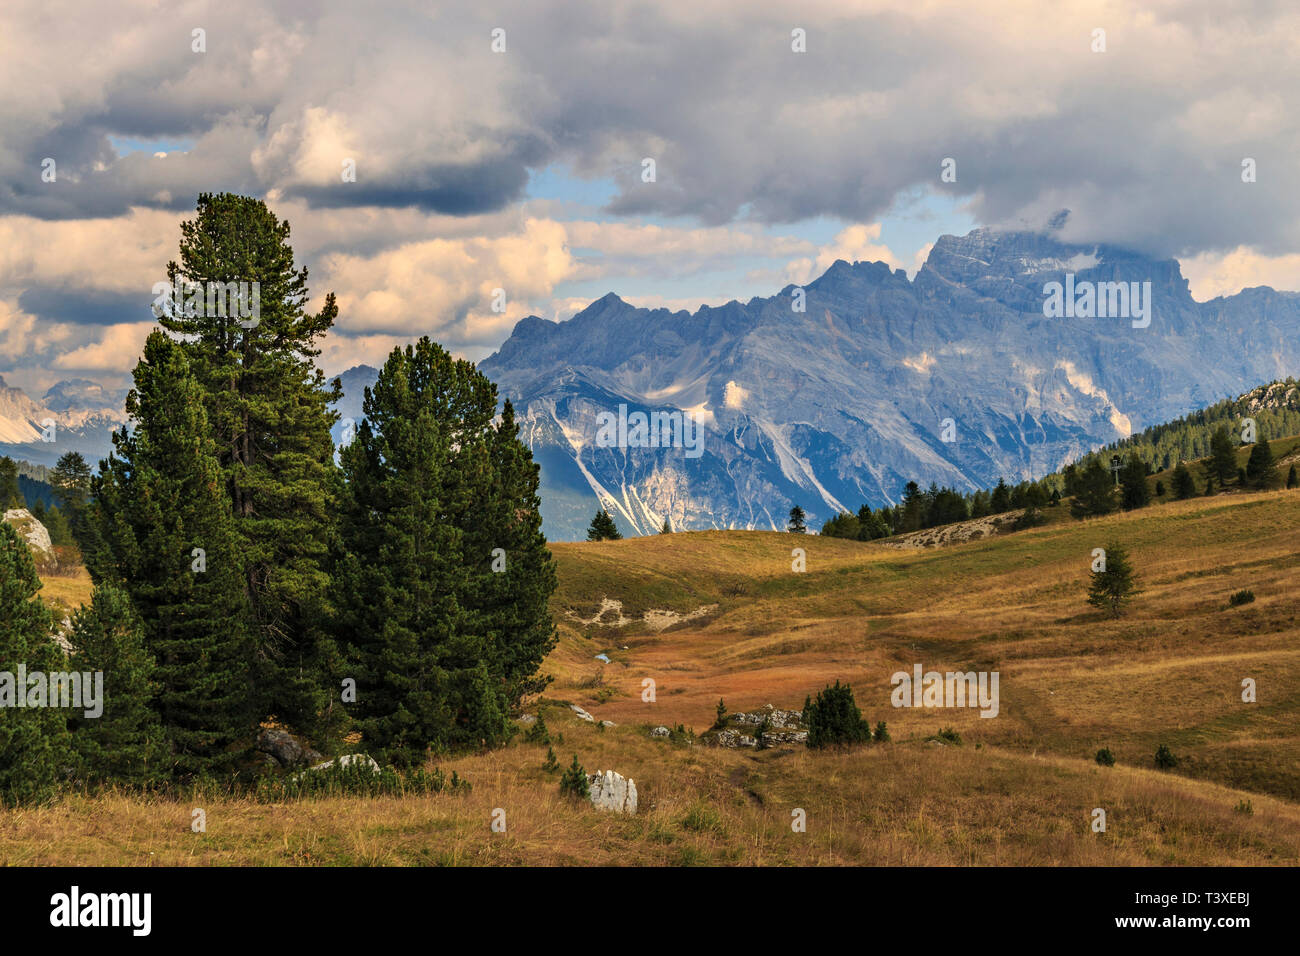 A view from Falzarego Pass, a high altitude road pass linking Val Badia with Cortina d'Ampezzo in the Dolomites, Italy. The prairies at the pass with  - Stock Image